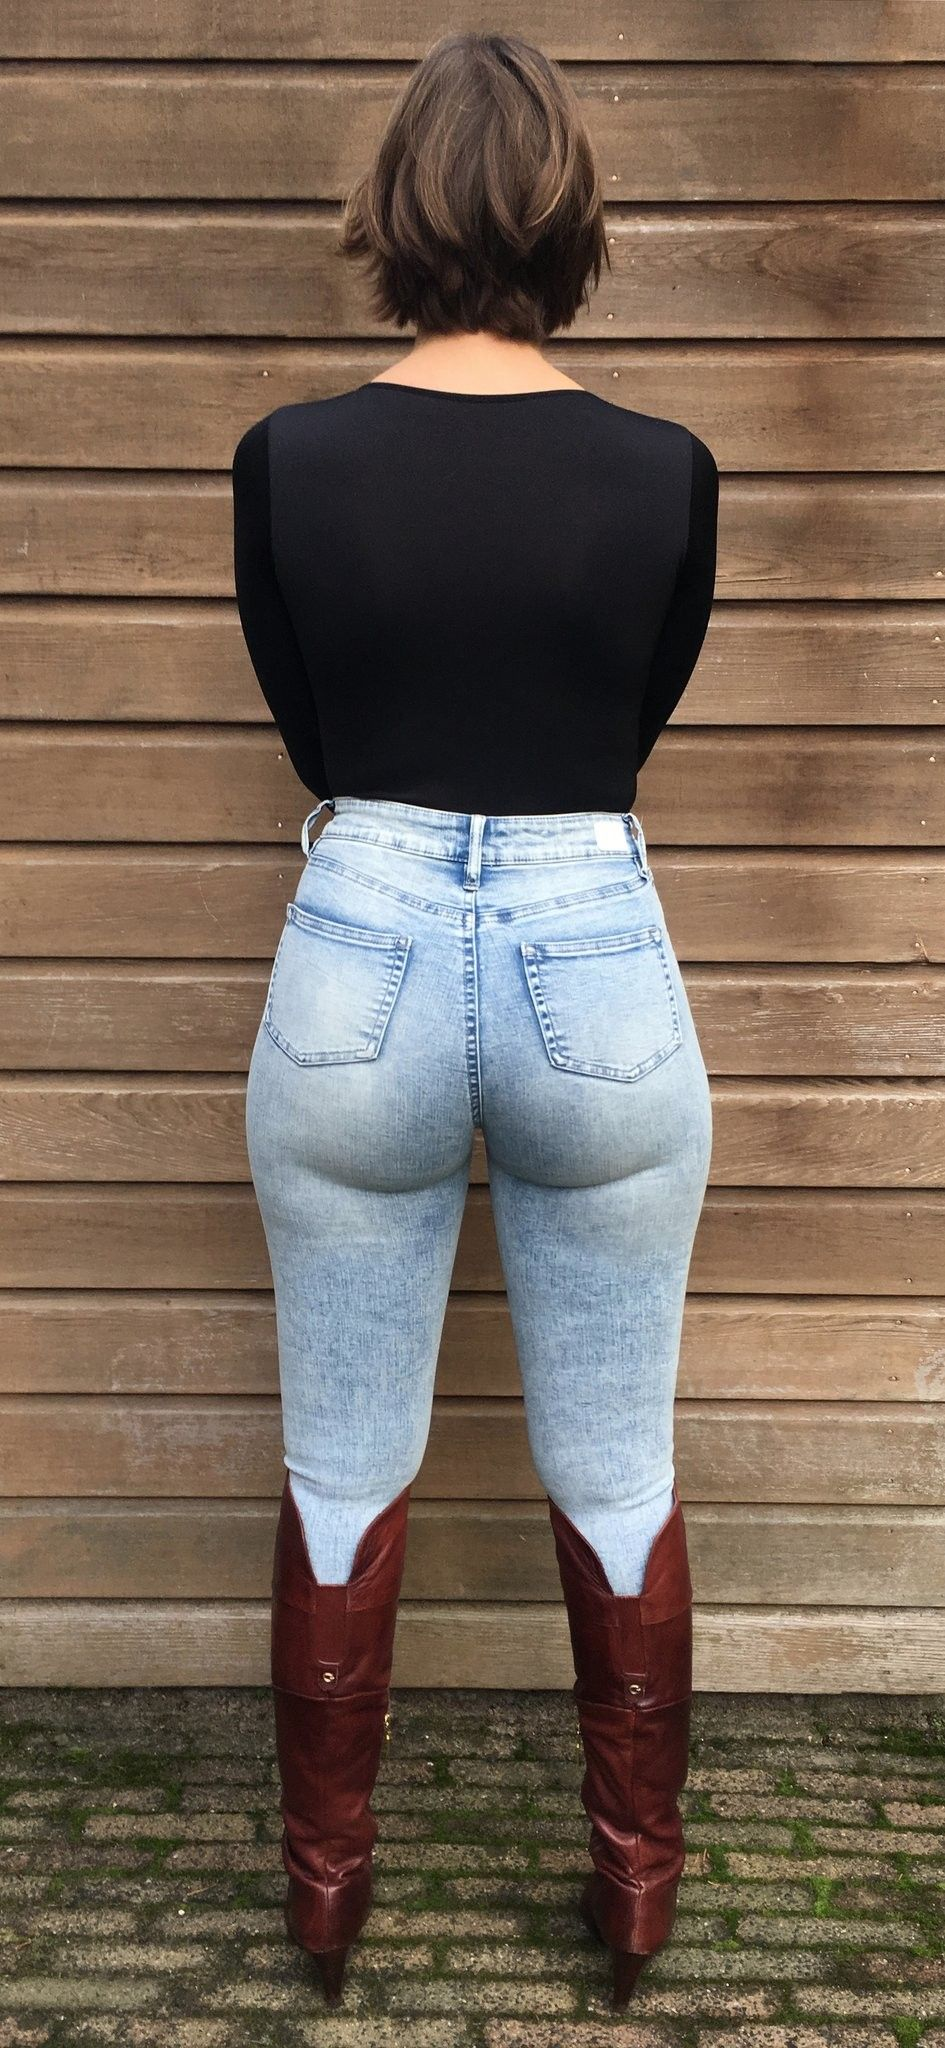 Tight jeans big ass in mom